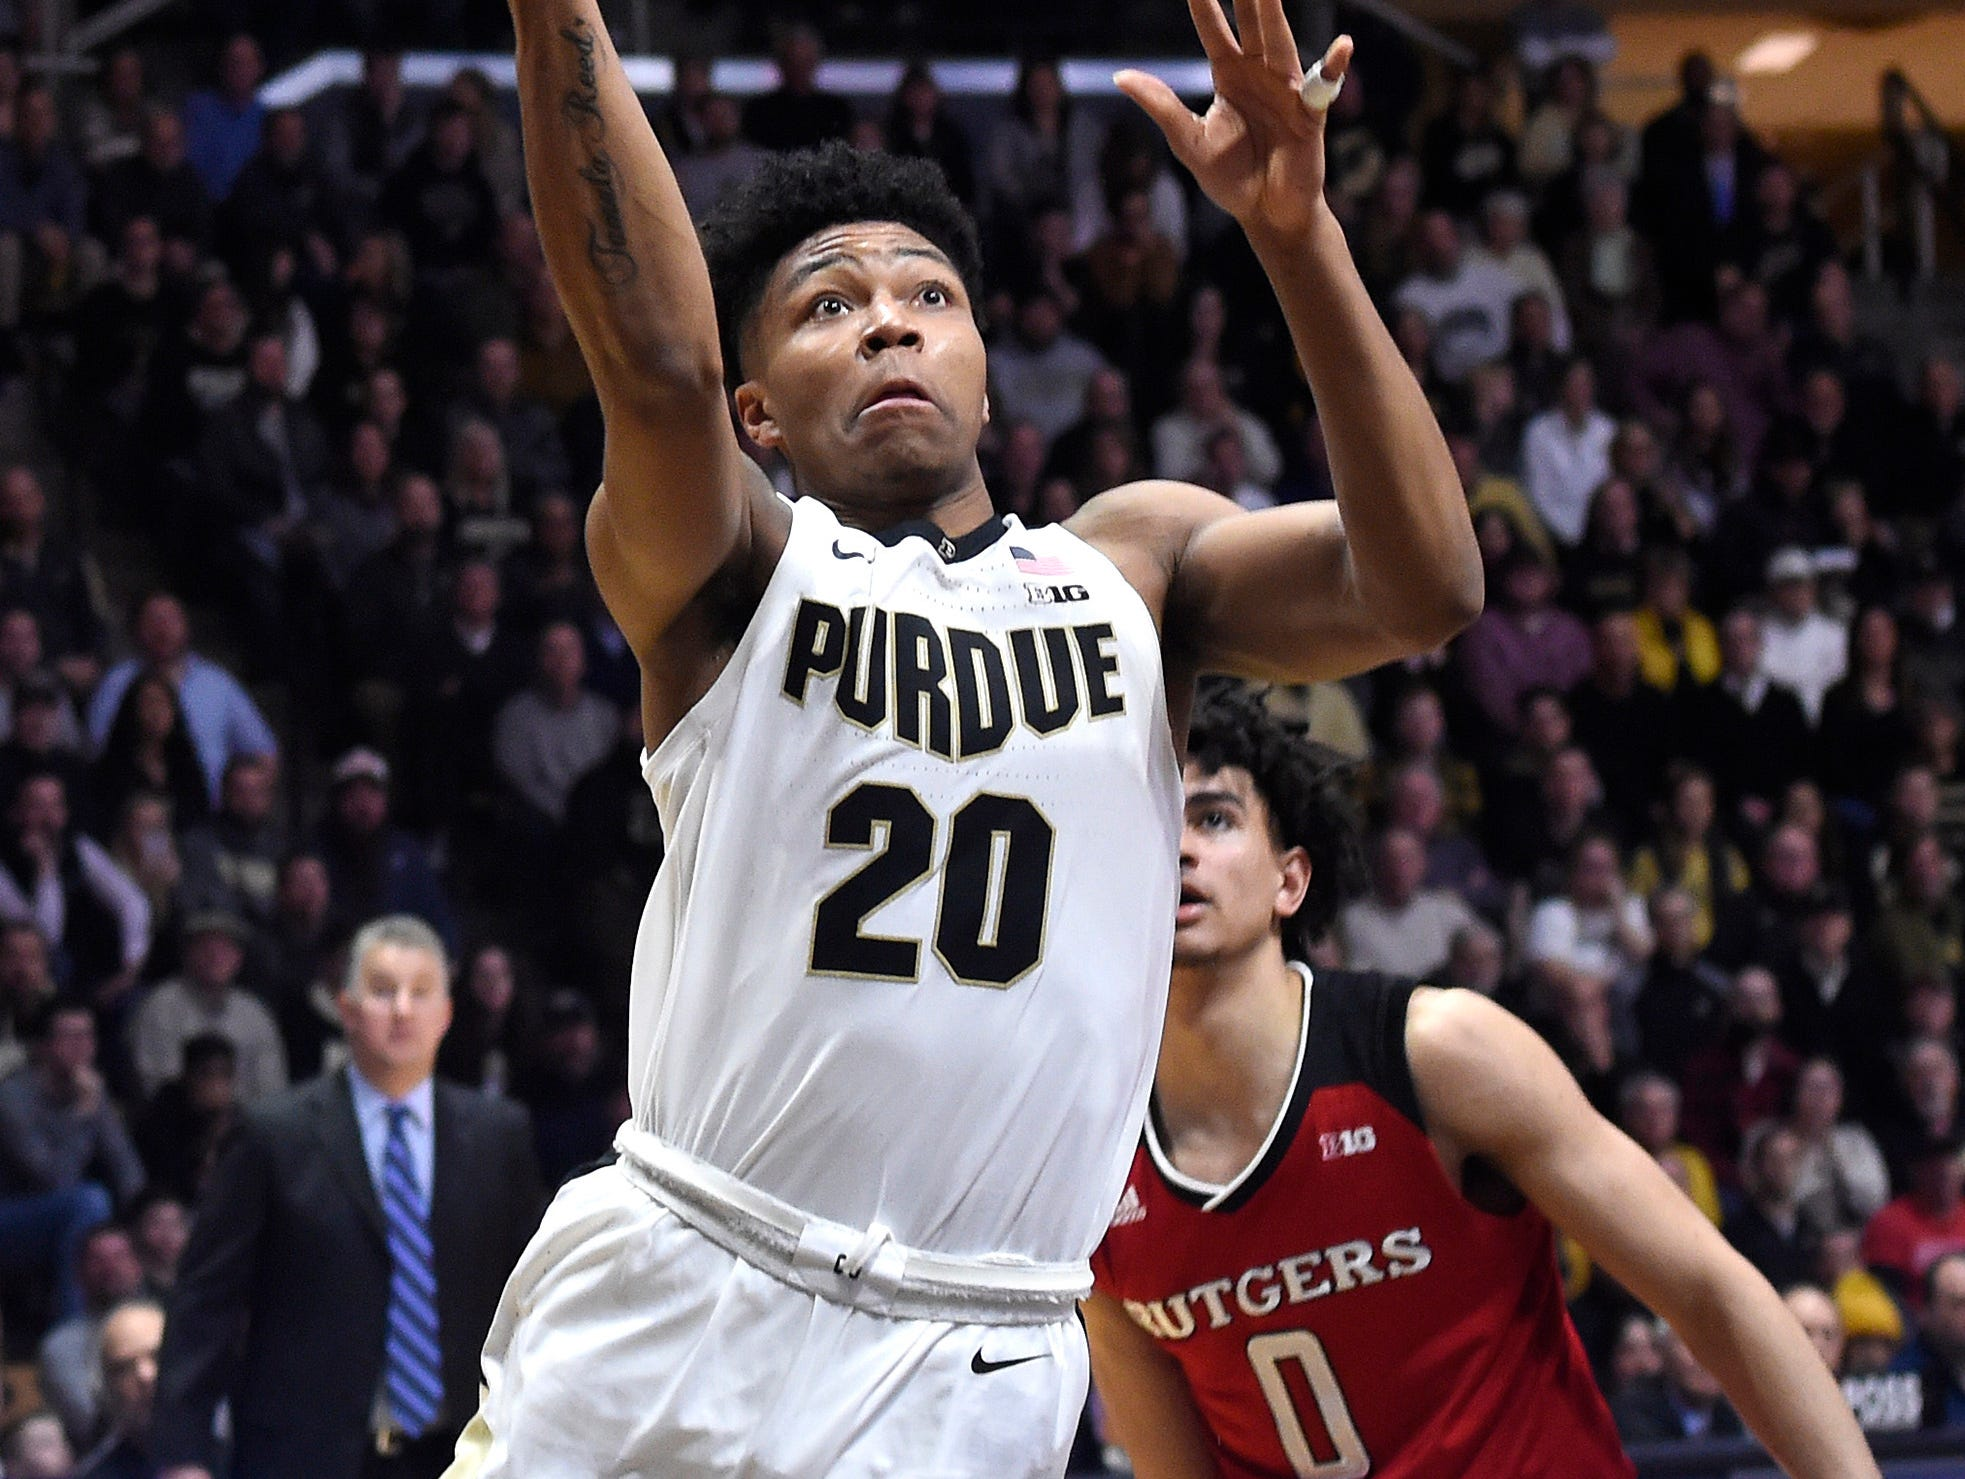 Jan 15, 2019; West Lafayette, IN, USA; Purdue Boilermakers guard Nojel Eastern (20) drives Rutgers Scarlet Knights guard Geo Baker (0) in the 2nd half at Mackey Arena. Mandatory Credit: Sandra Dukes-USA TODAY Sports